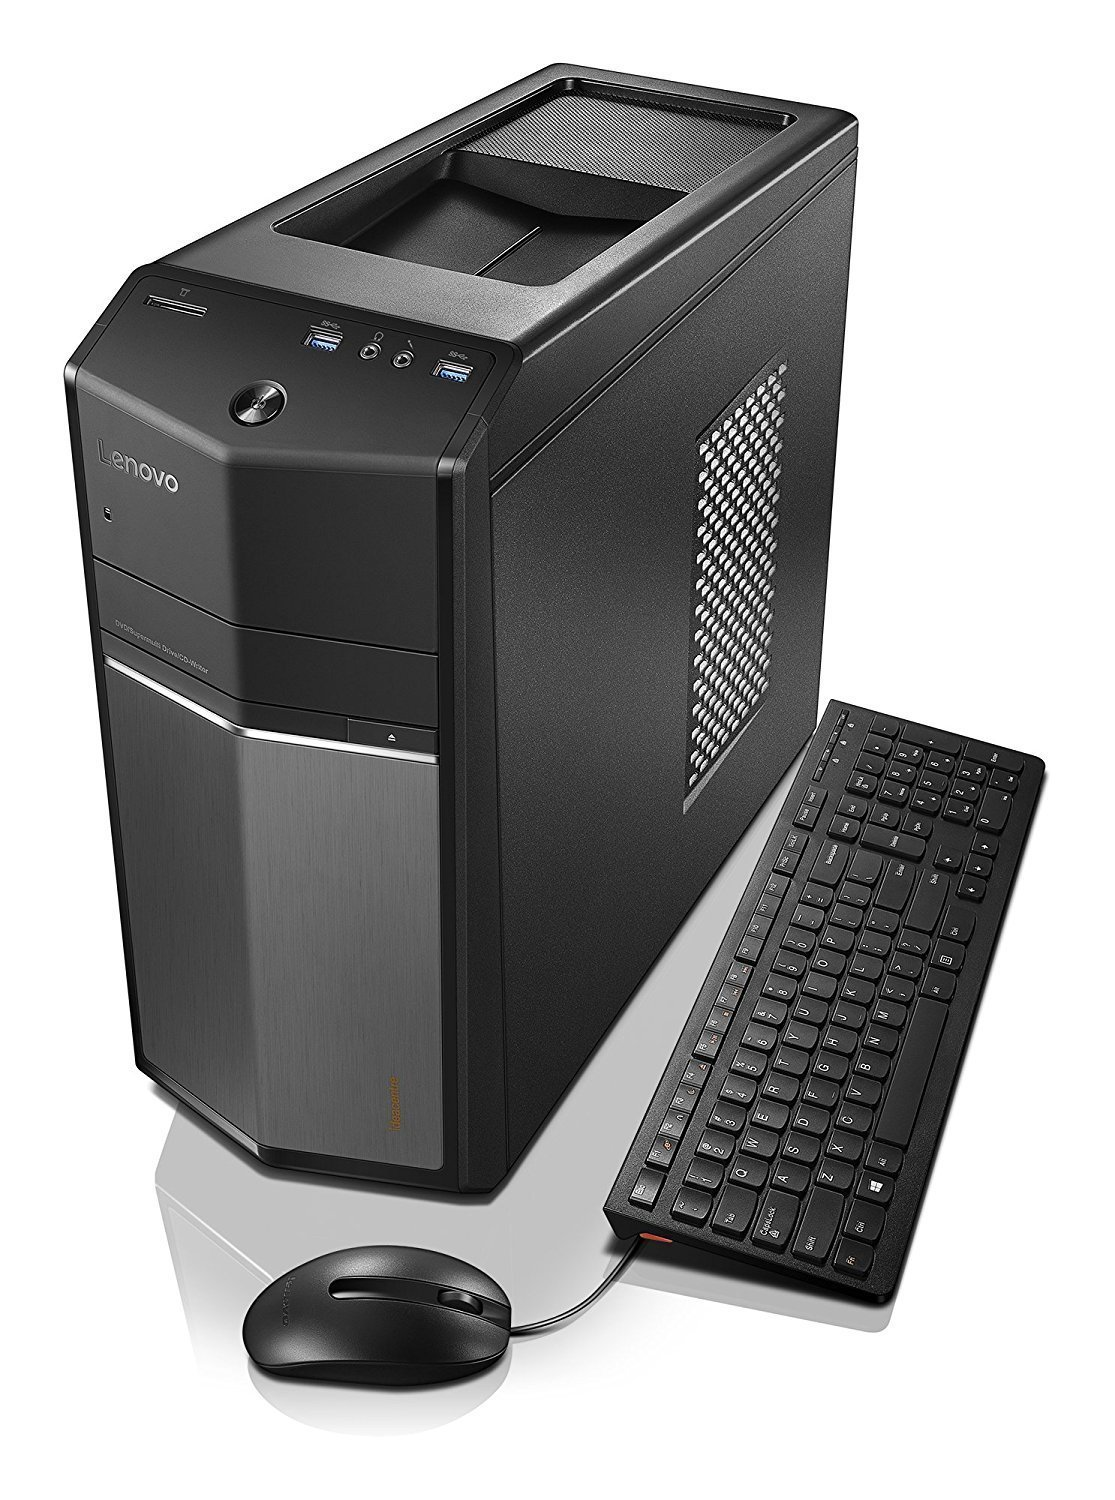 Lenovo Ideacentre 710-25ISH High Performance Gaming Desktop | Intel 2.7GHz i5-6400 Quad-Core | NVIDIA GeForce GTX 730 | 8GB RAM | 1TB + 8GB SSHD | USB keyboard & mouse | Windows 10